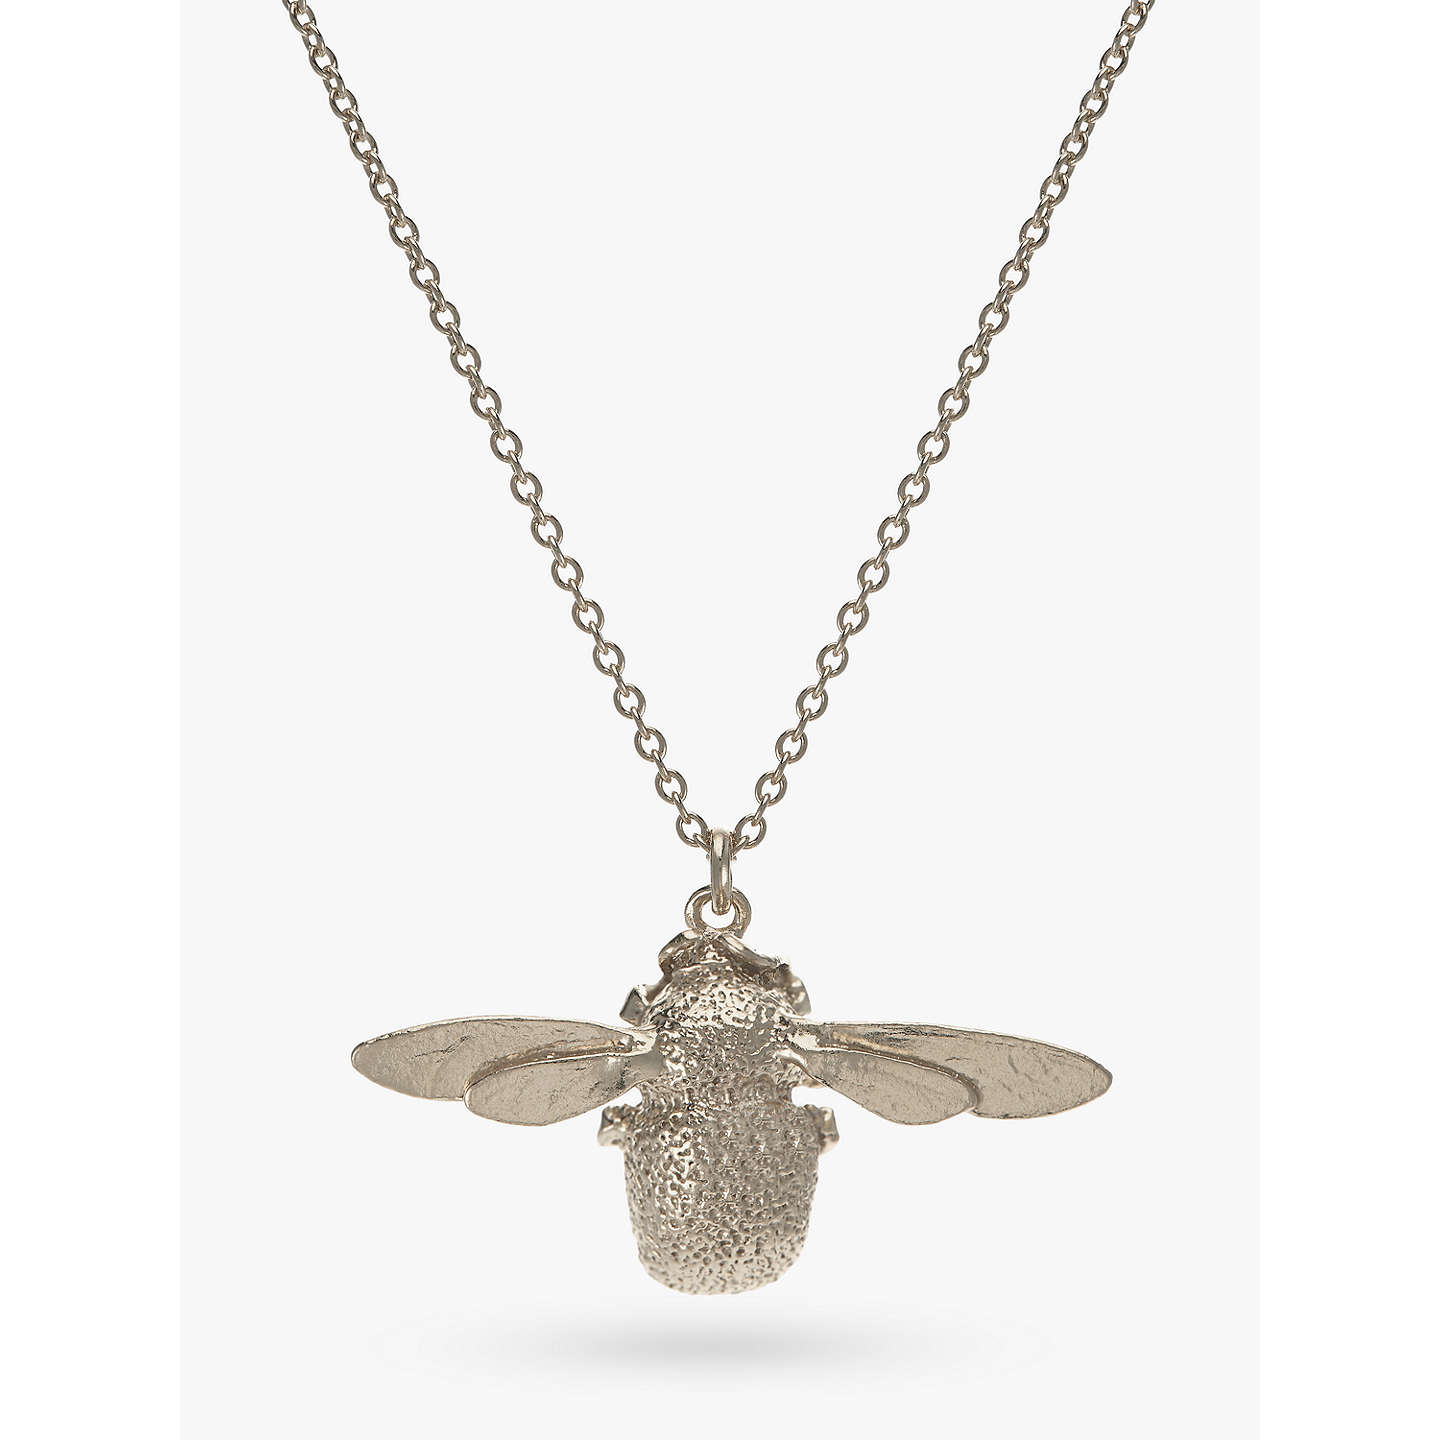 Alex monroe sterling silver bumble bee pendant necklace silver at buyalex monroe sterling silver bumble bee pendant necklace silver online at johnlewis aloadofball Images